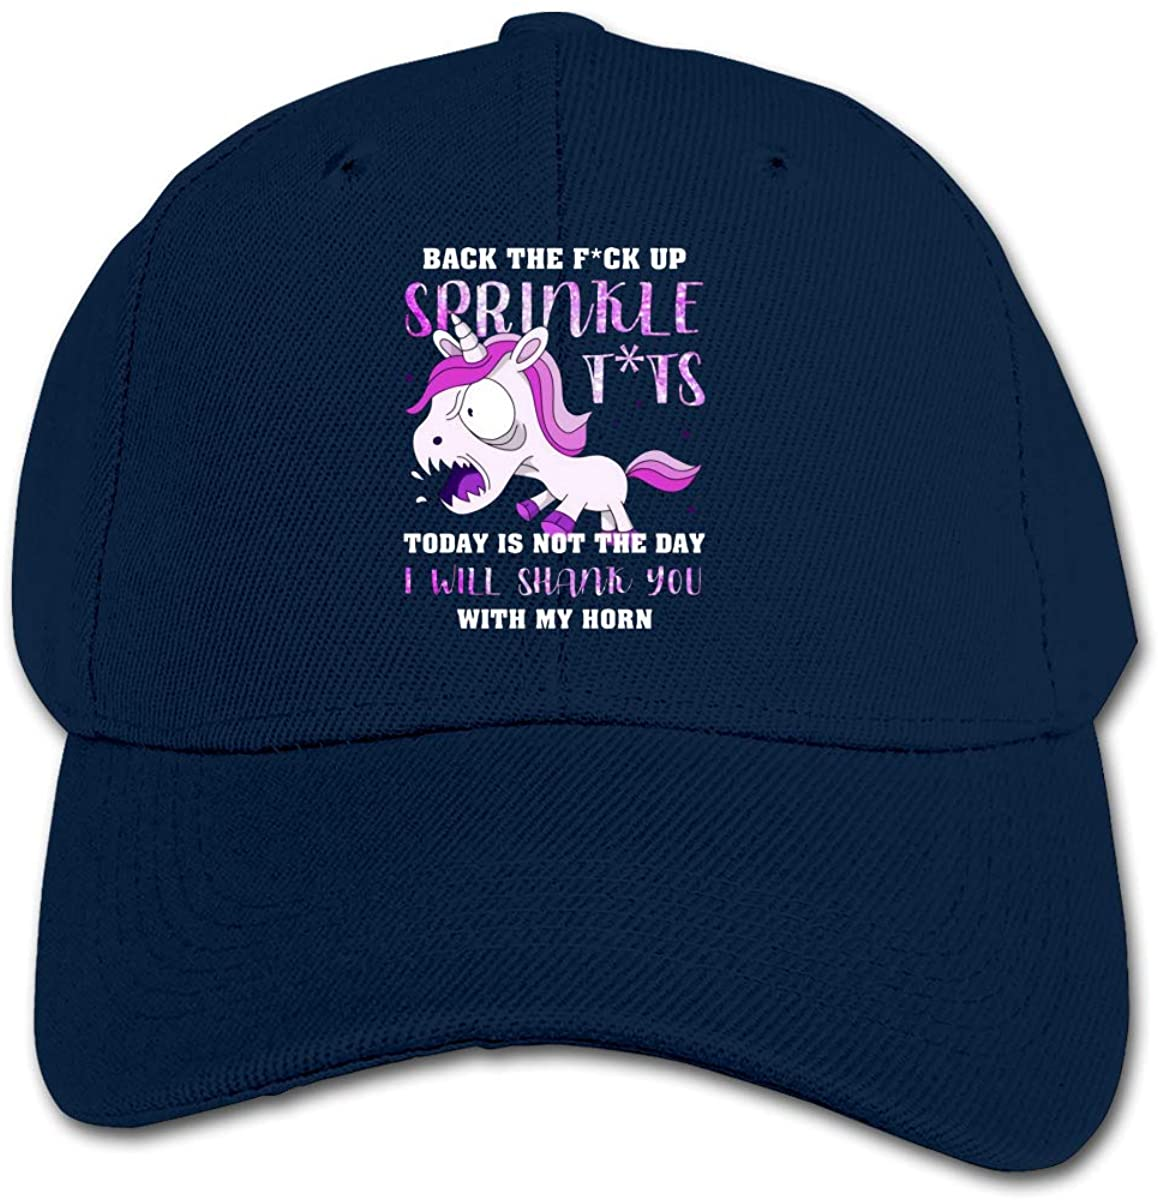 Back The Fuck Up Sprinkle Tits Today is Not The Day Unicorn Nice Children's Chapeau Black Children's Hats